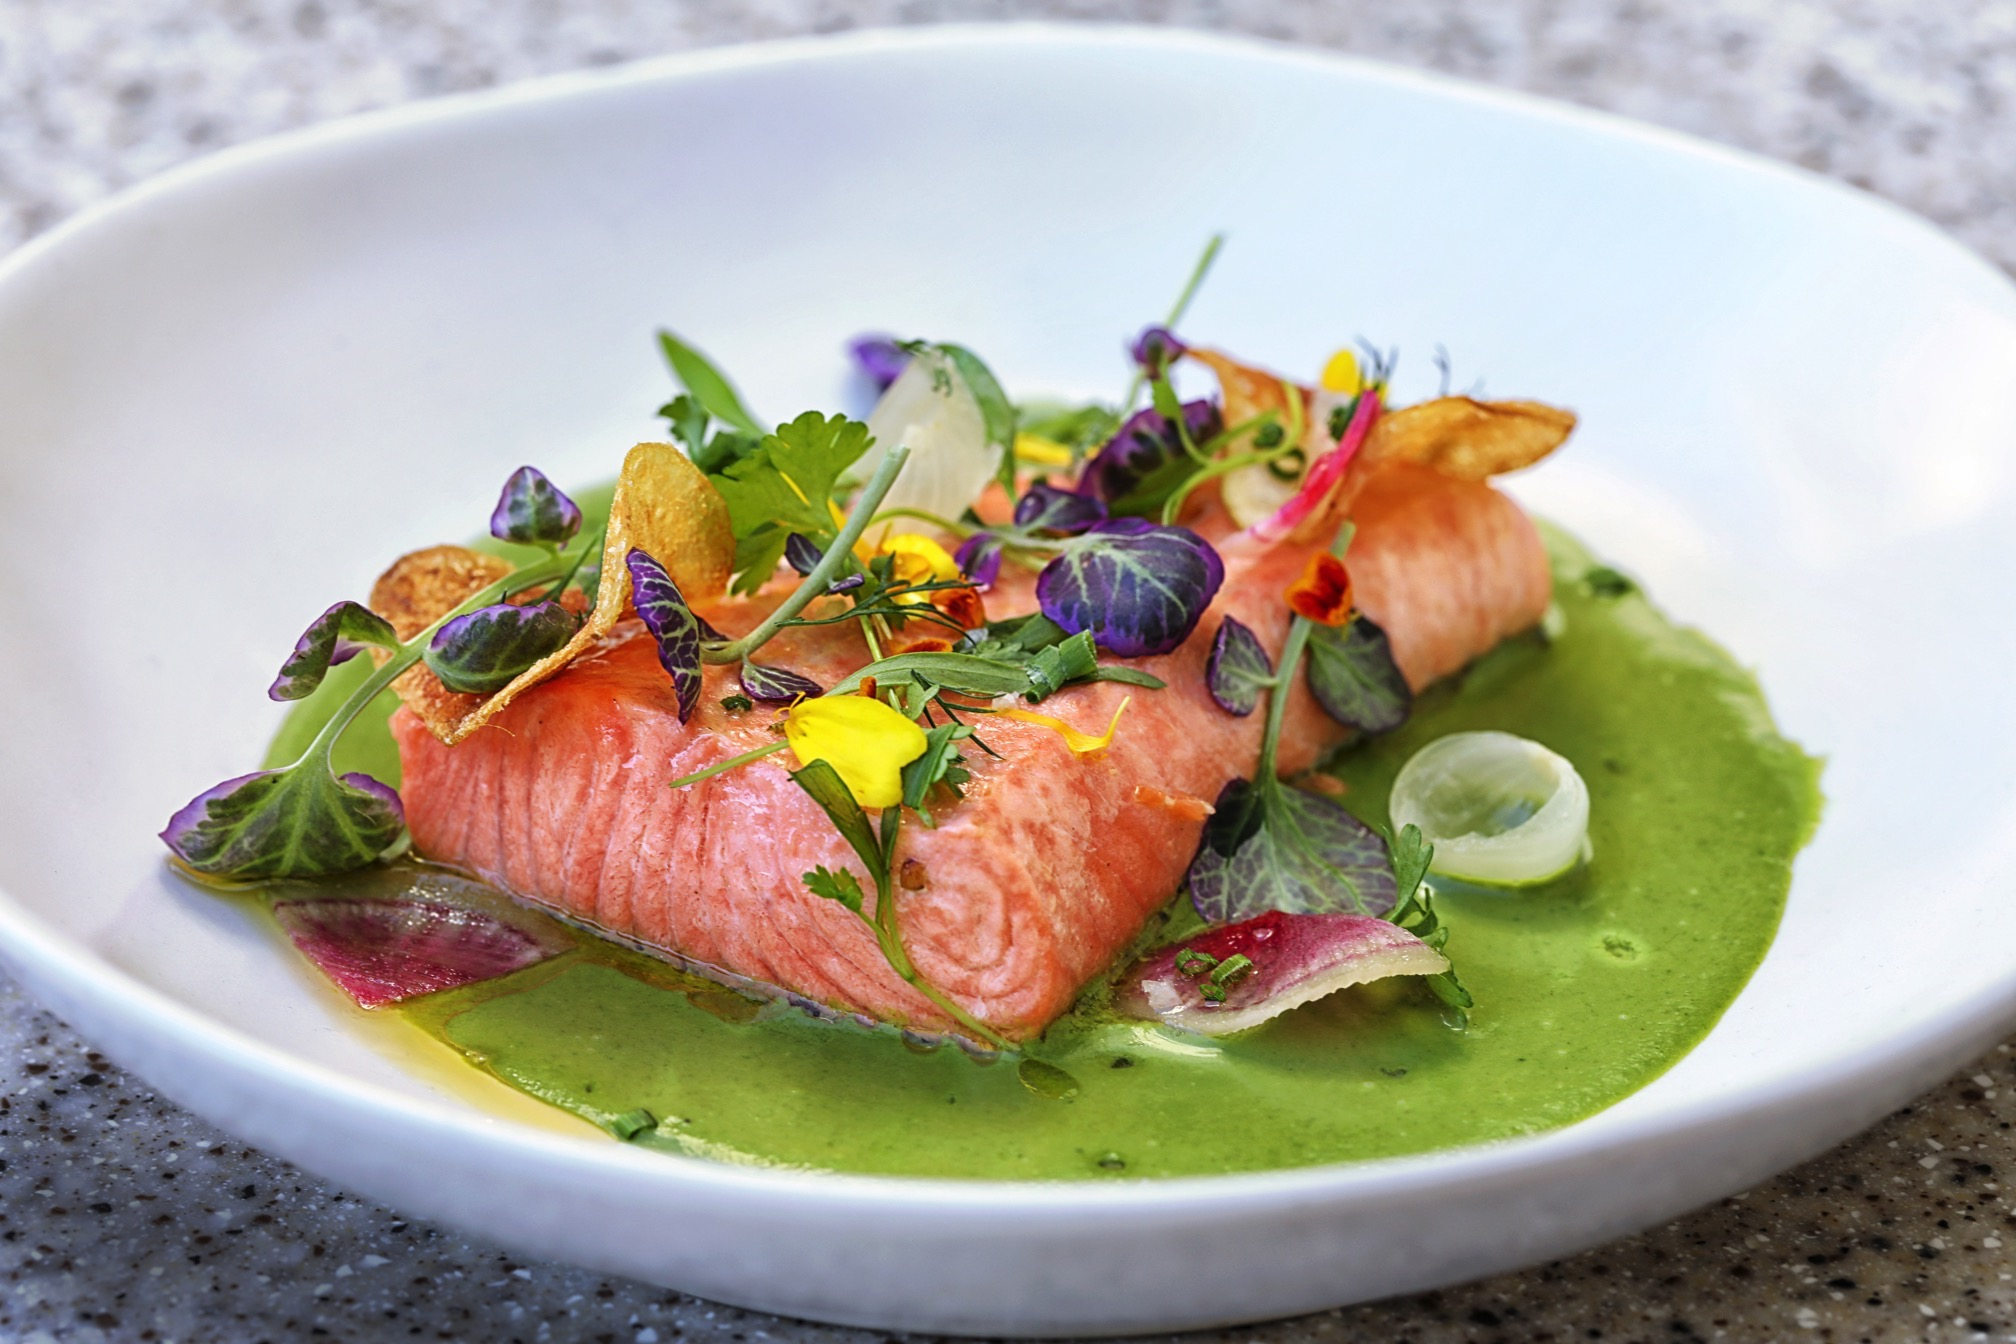 NINE-TEN Restaurant & Bar's Poached Salmon in Vichyssoise Sauce